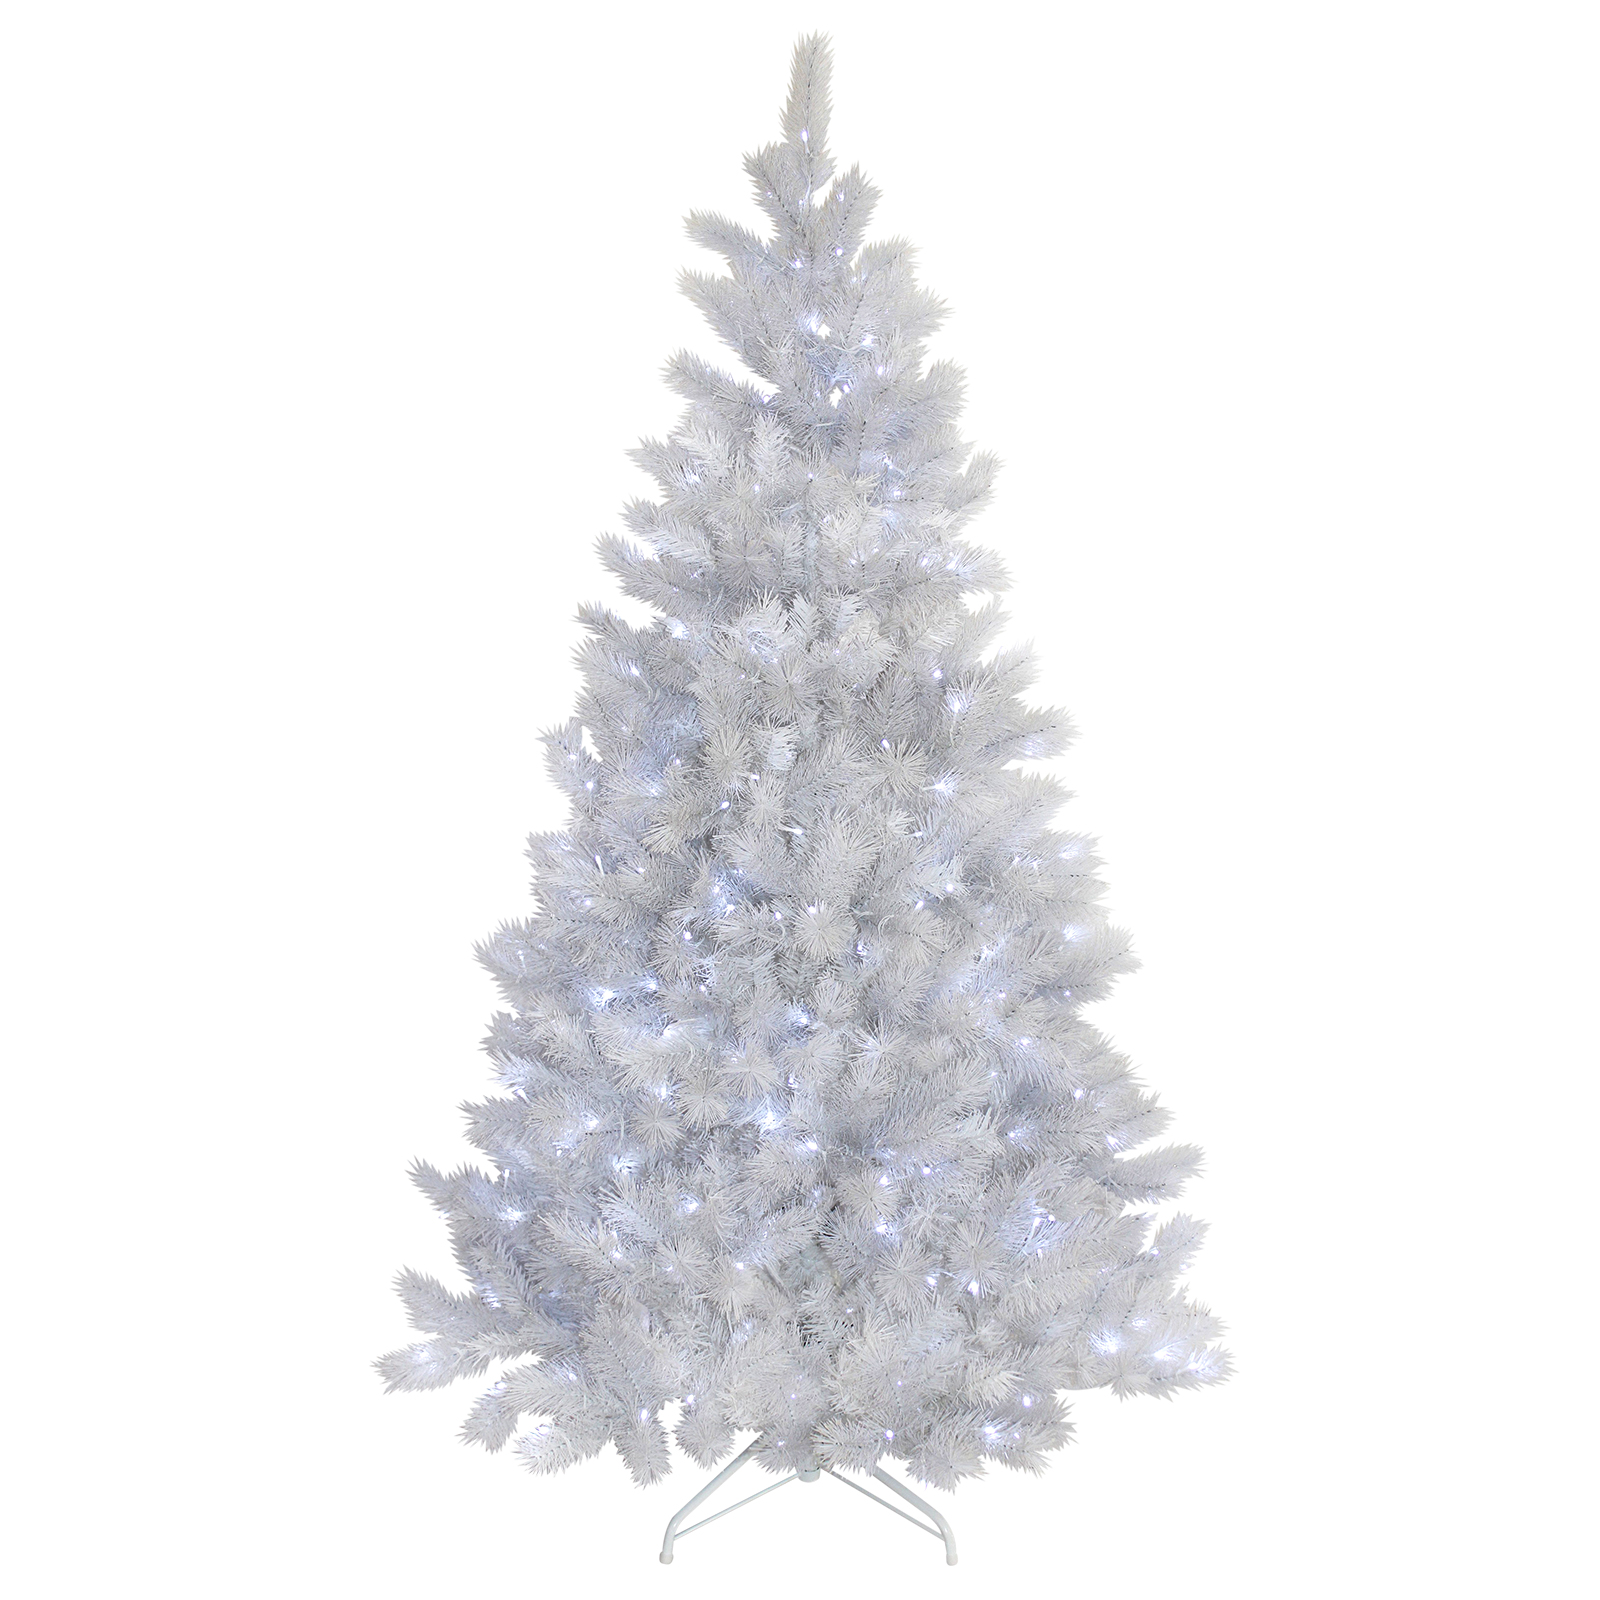 Pre Lit Led Lights Christmas Tree: 5ft 6ft 7ft White Glitter Pine Artificial Pre-Lit LED